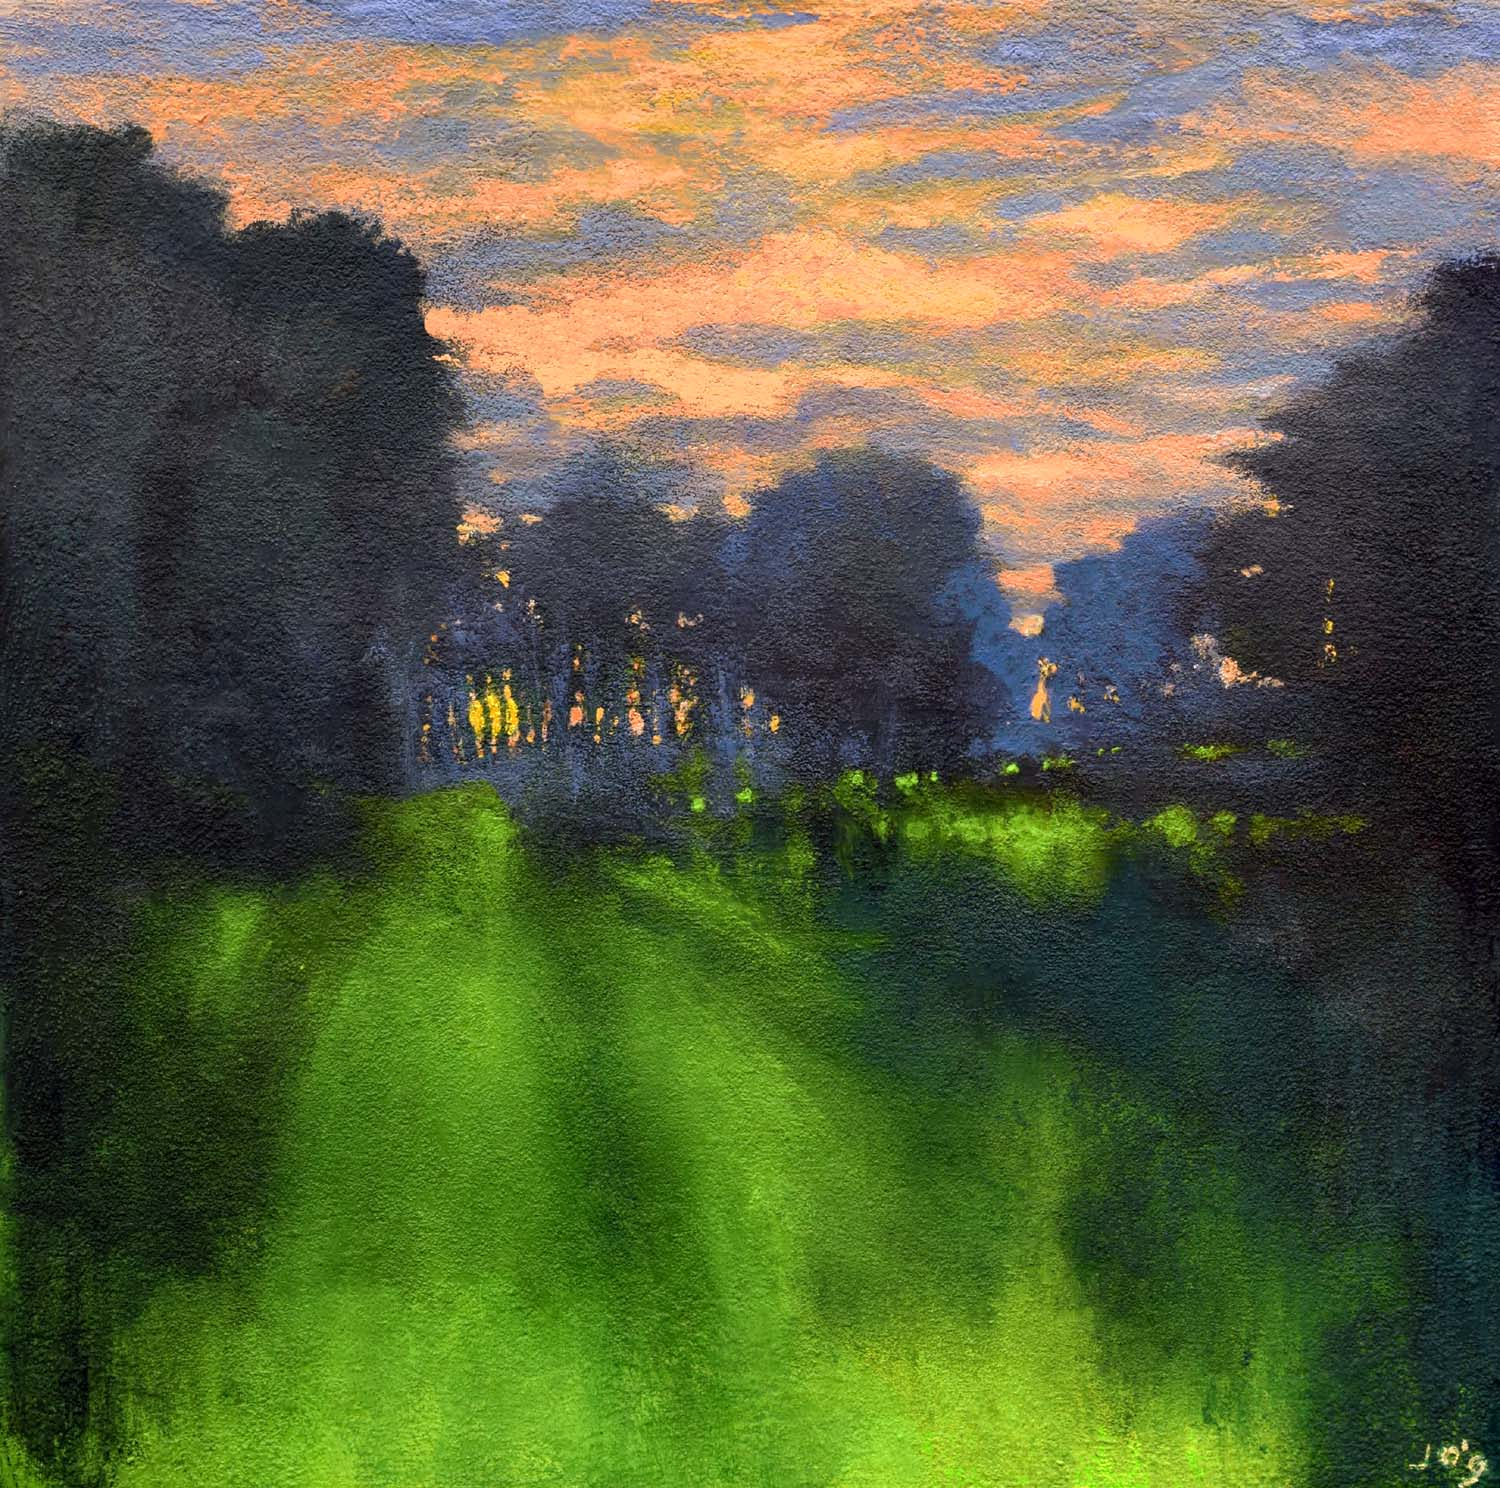 Silence at Eventide, a quiet sunset painted with acrylics on canvas by John O'Grady